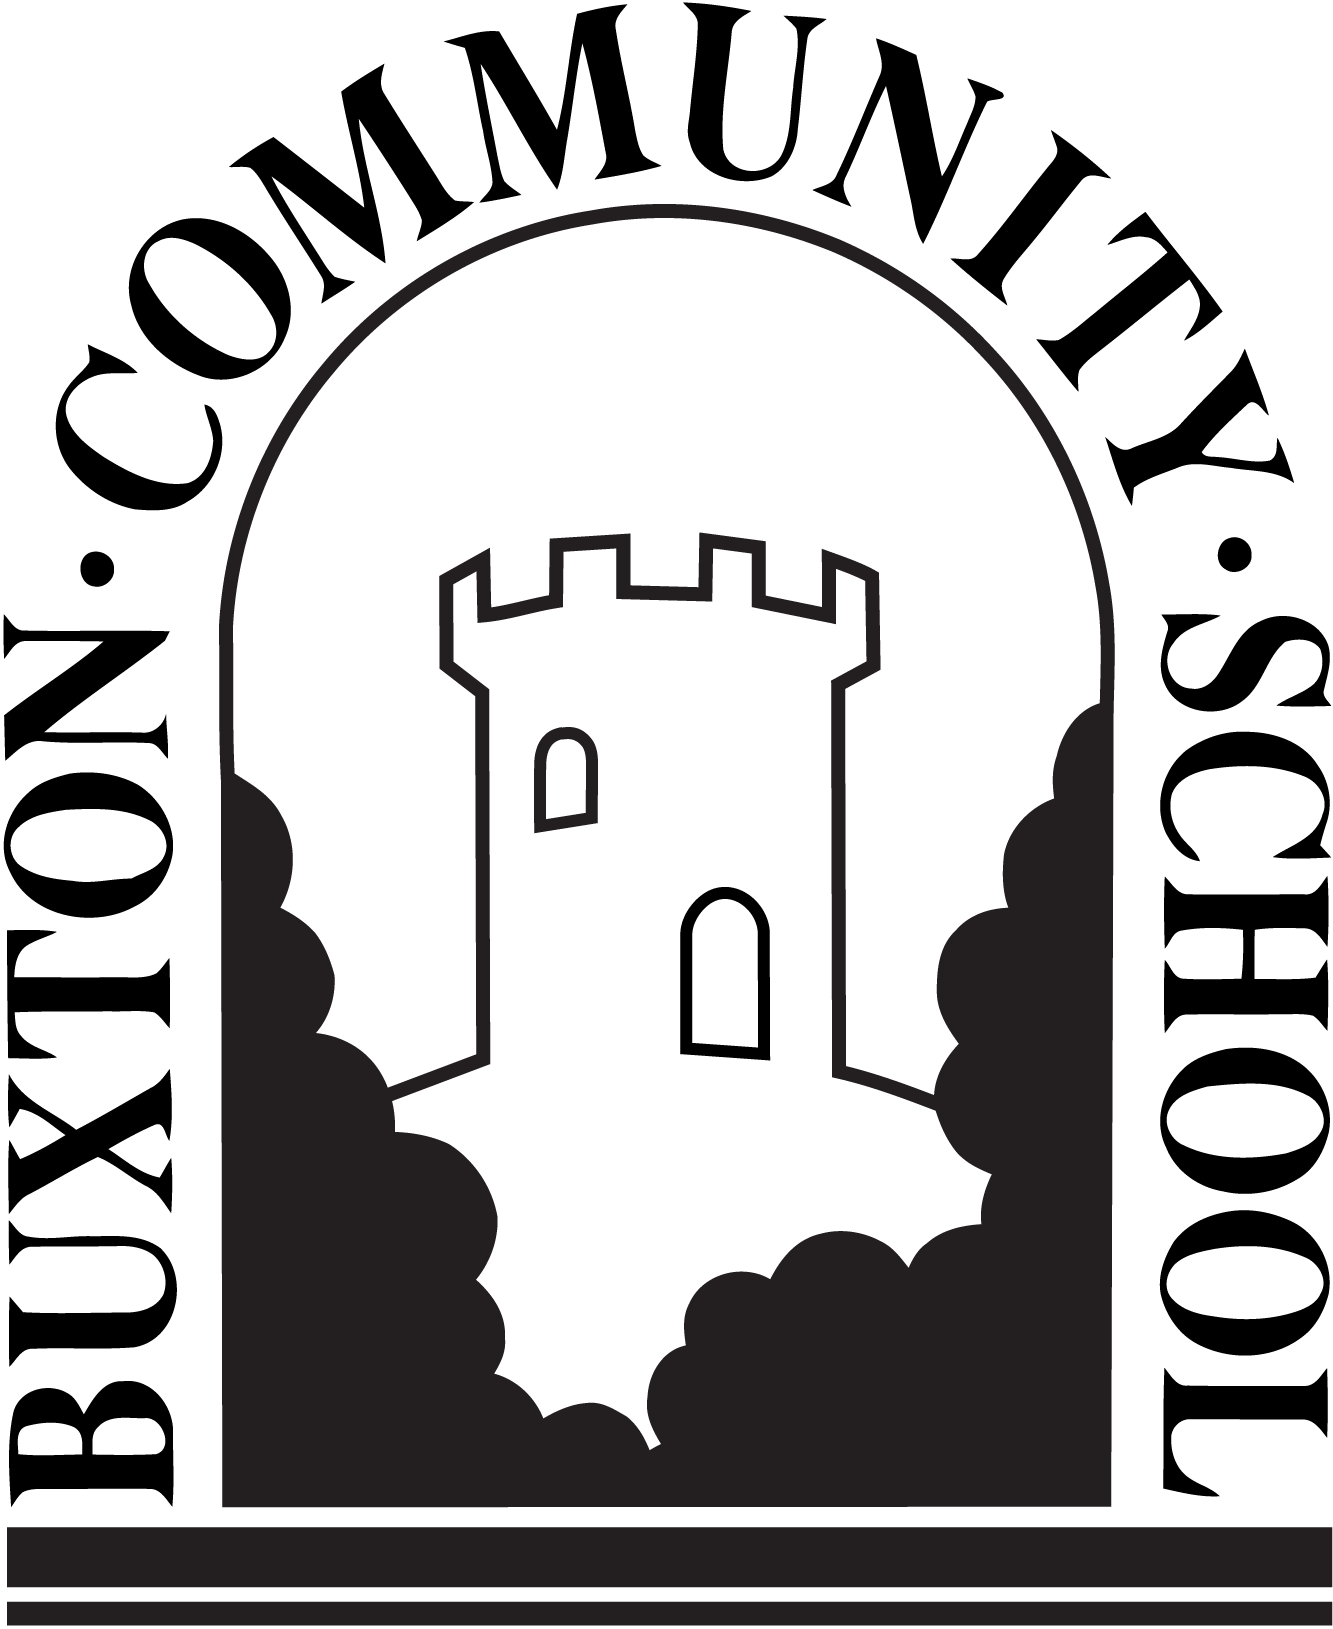 Buxton-community-school-logo